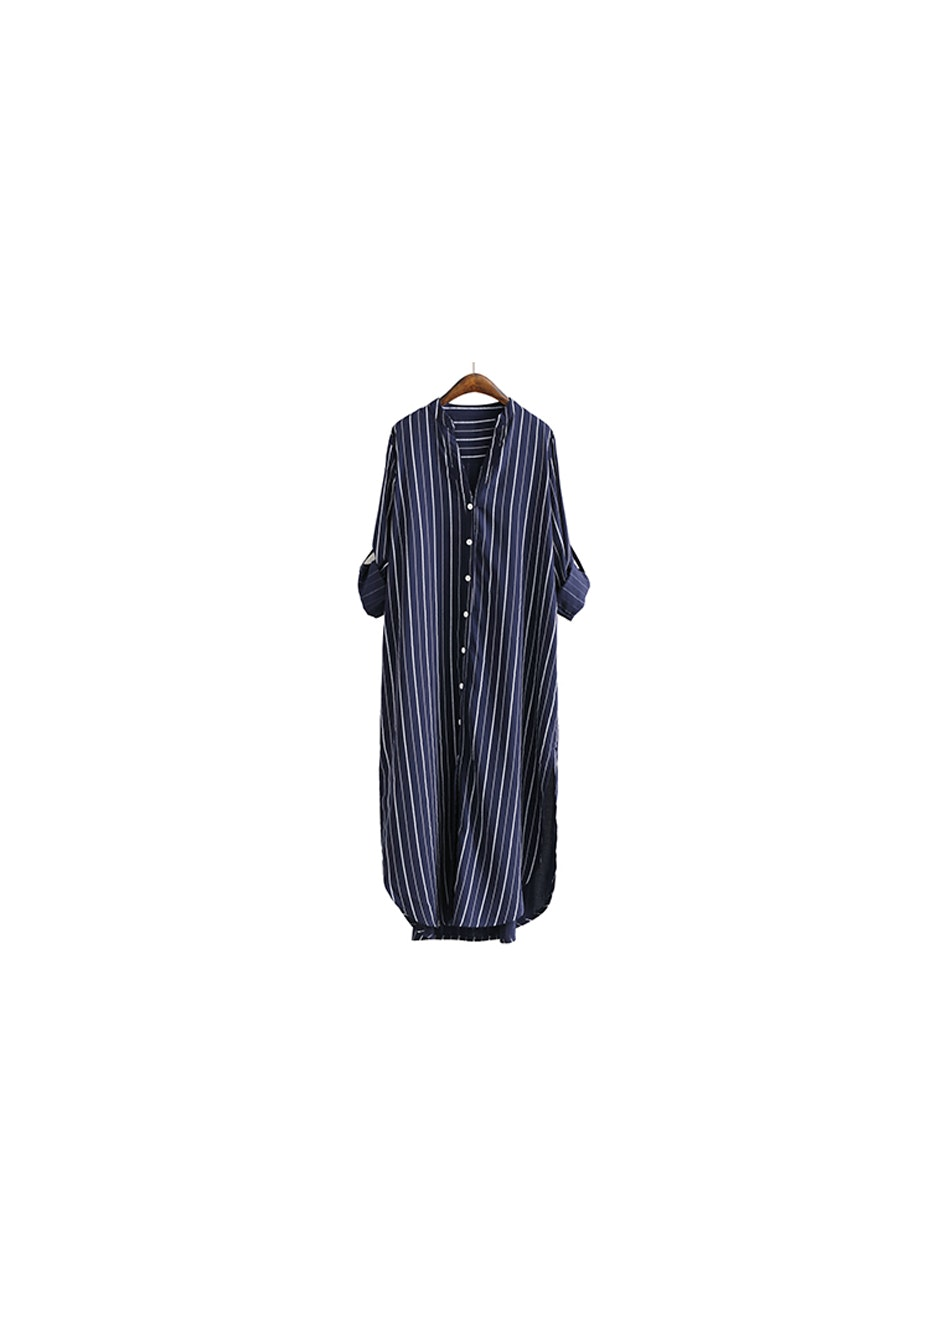 Celini Shirt Dress - Navy